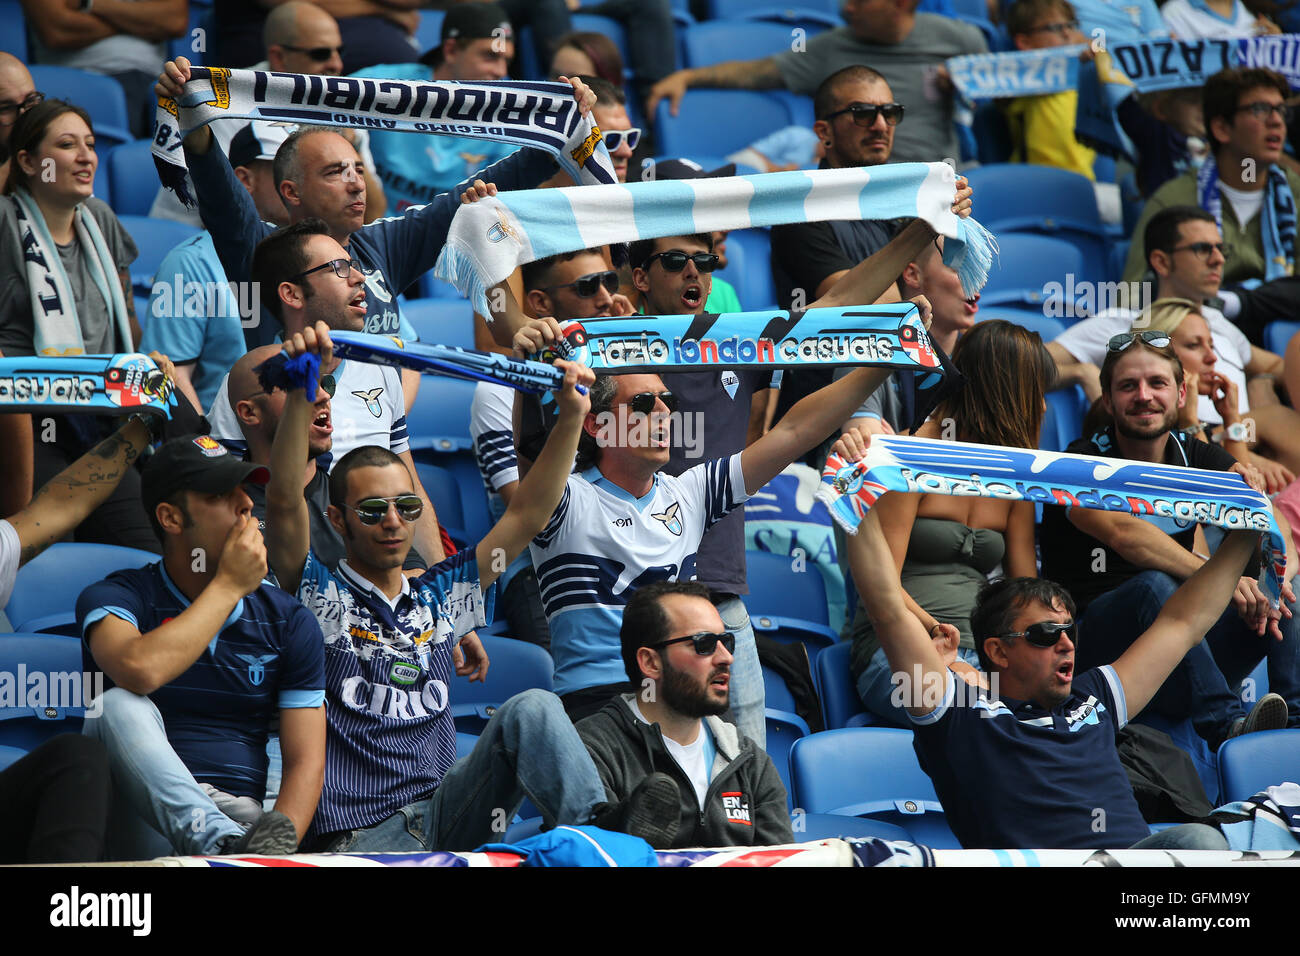 American Express Stadium, Brighton, Great Britain. 31st July 2016. Lazio fans during a Pre-Season friendly match. Stock Photo